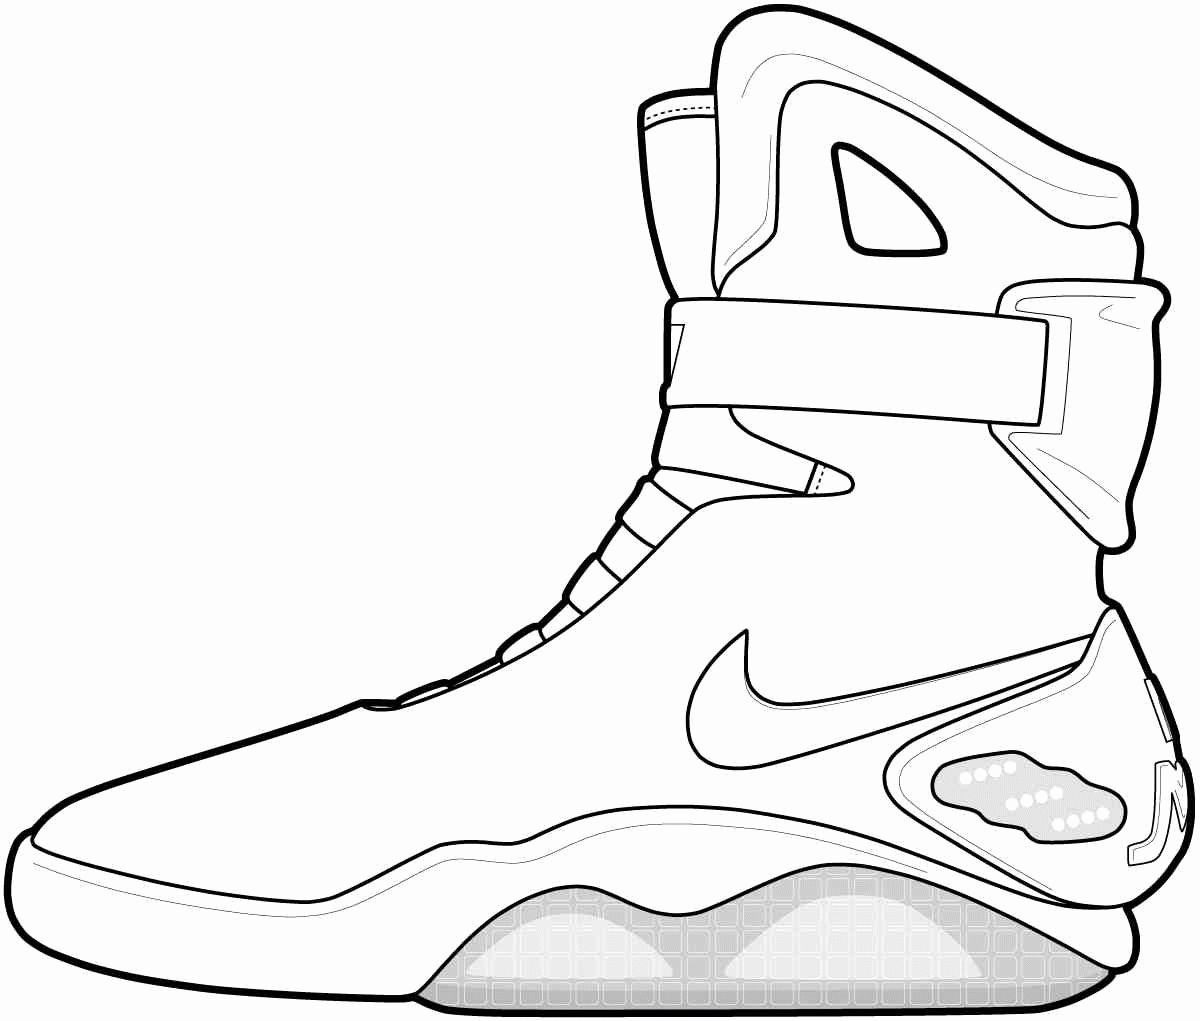 Jordan Shoe Coloring Book Fresh Jordan Shoes Coloring Pages Coloring Home Halloweenfiles Com In 2020 Shoe Template Pictures Of Jordans Coloring Pages